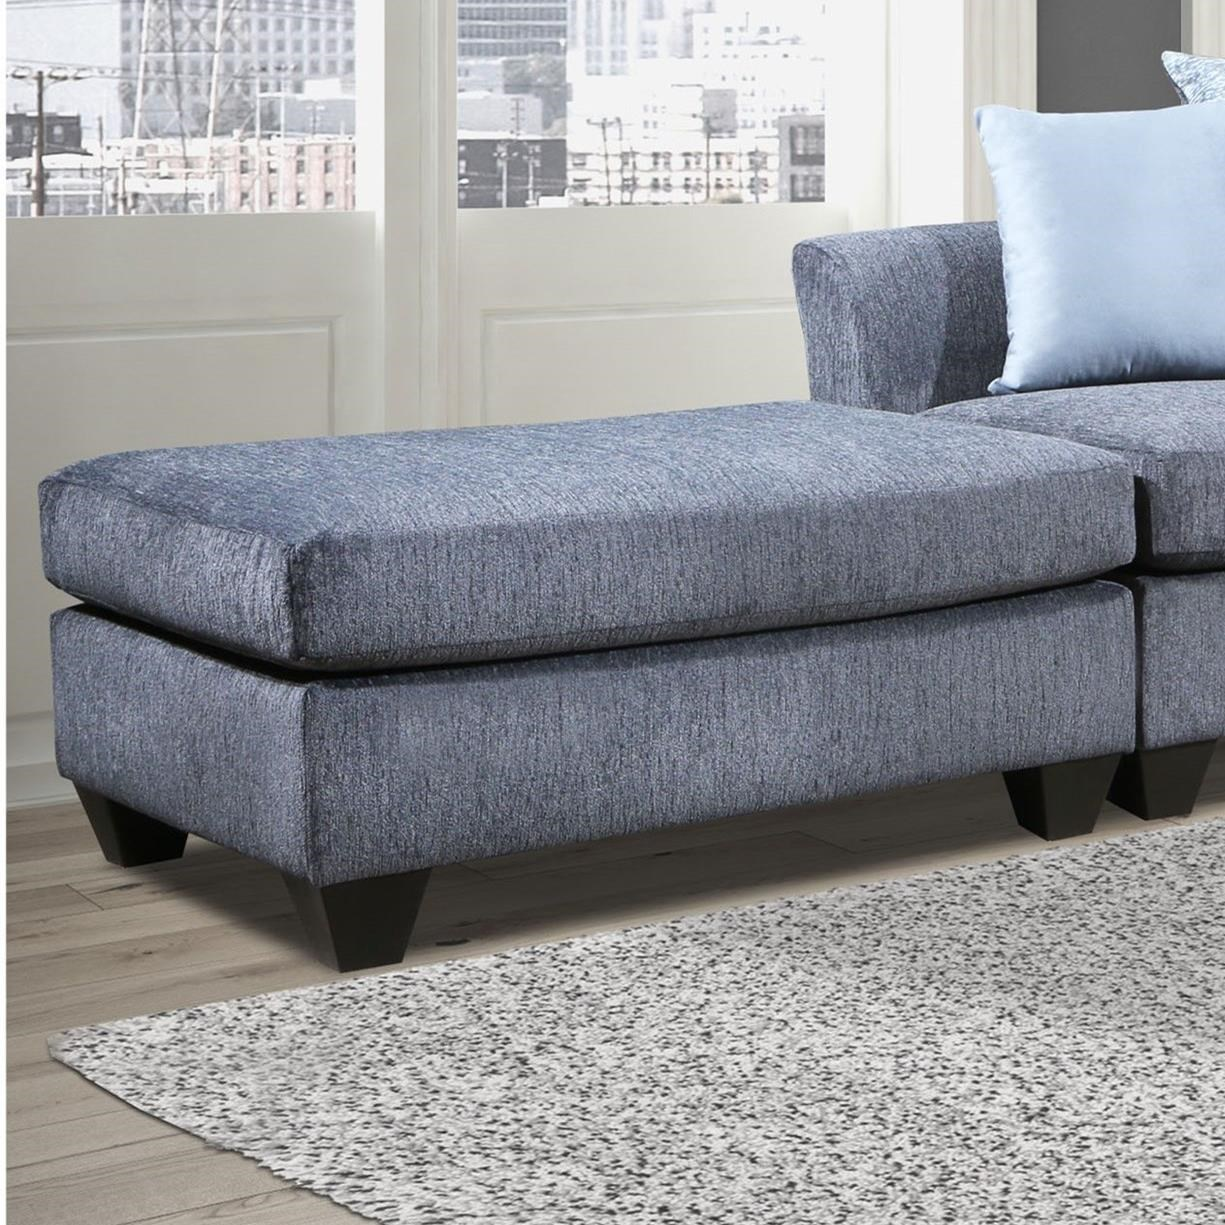 1360 Ottoman by Peak Living at Prime Brothers Furniture